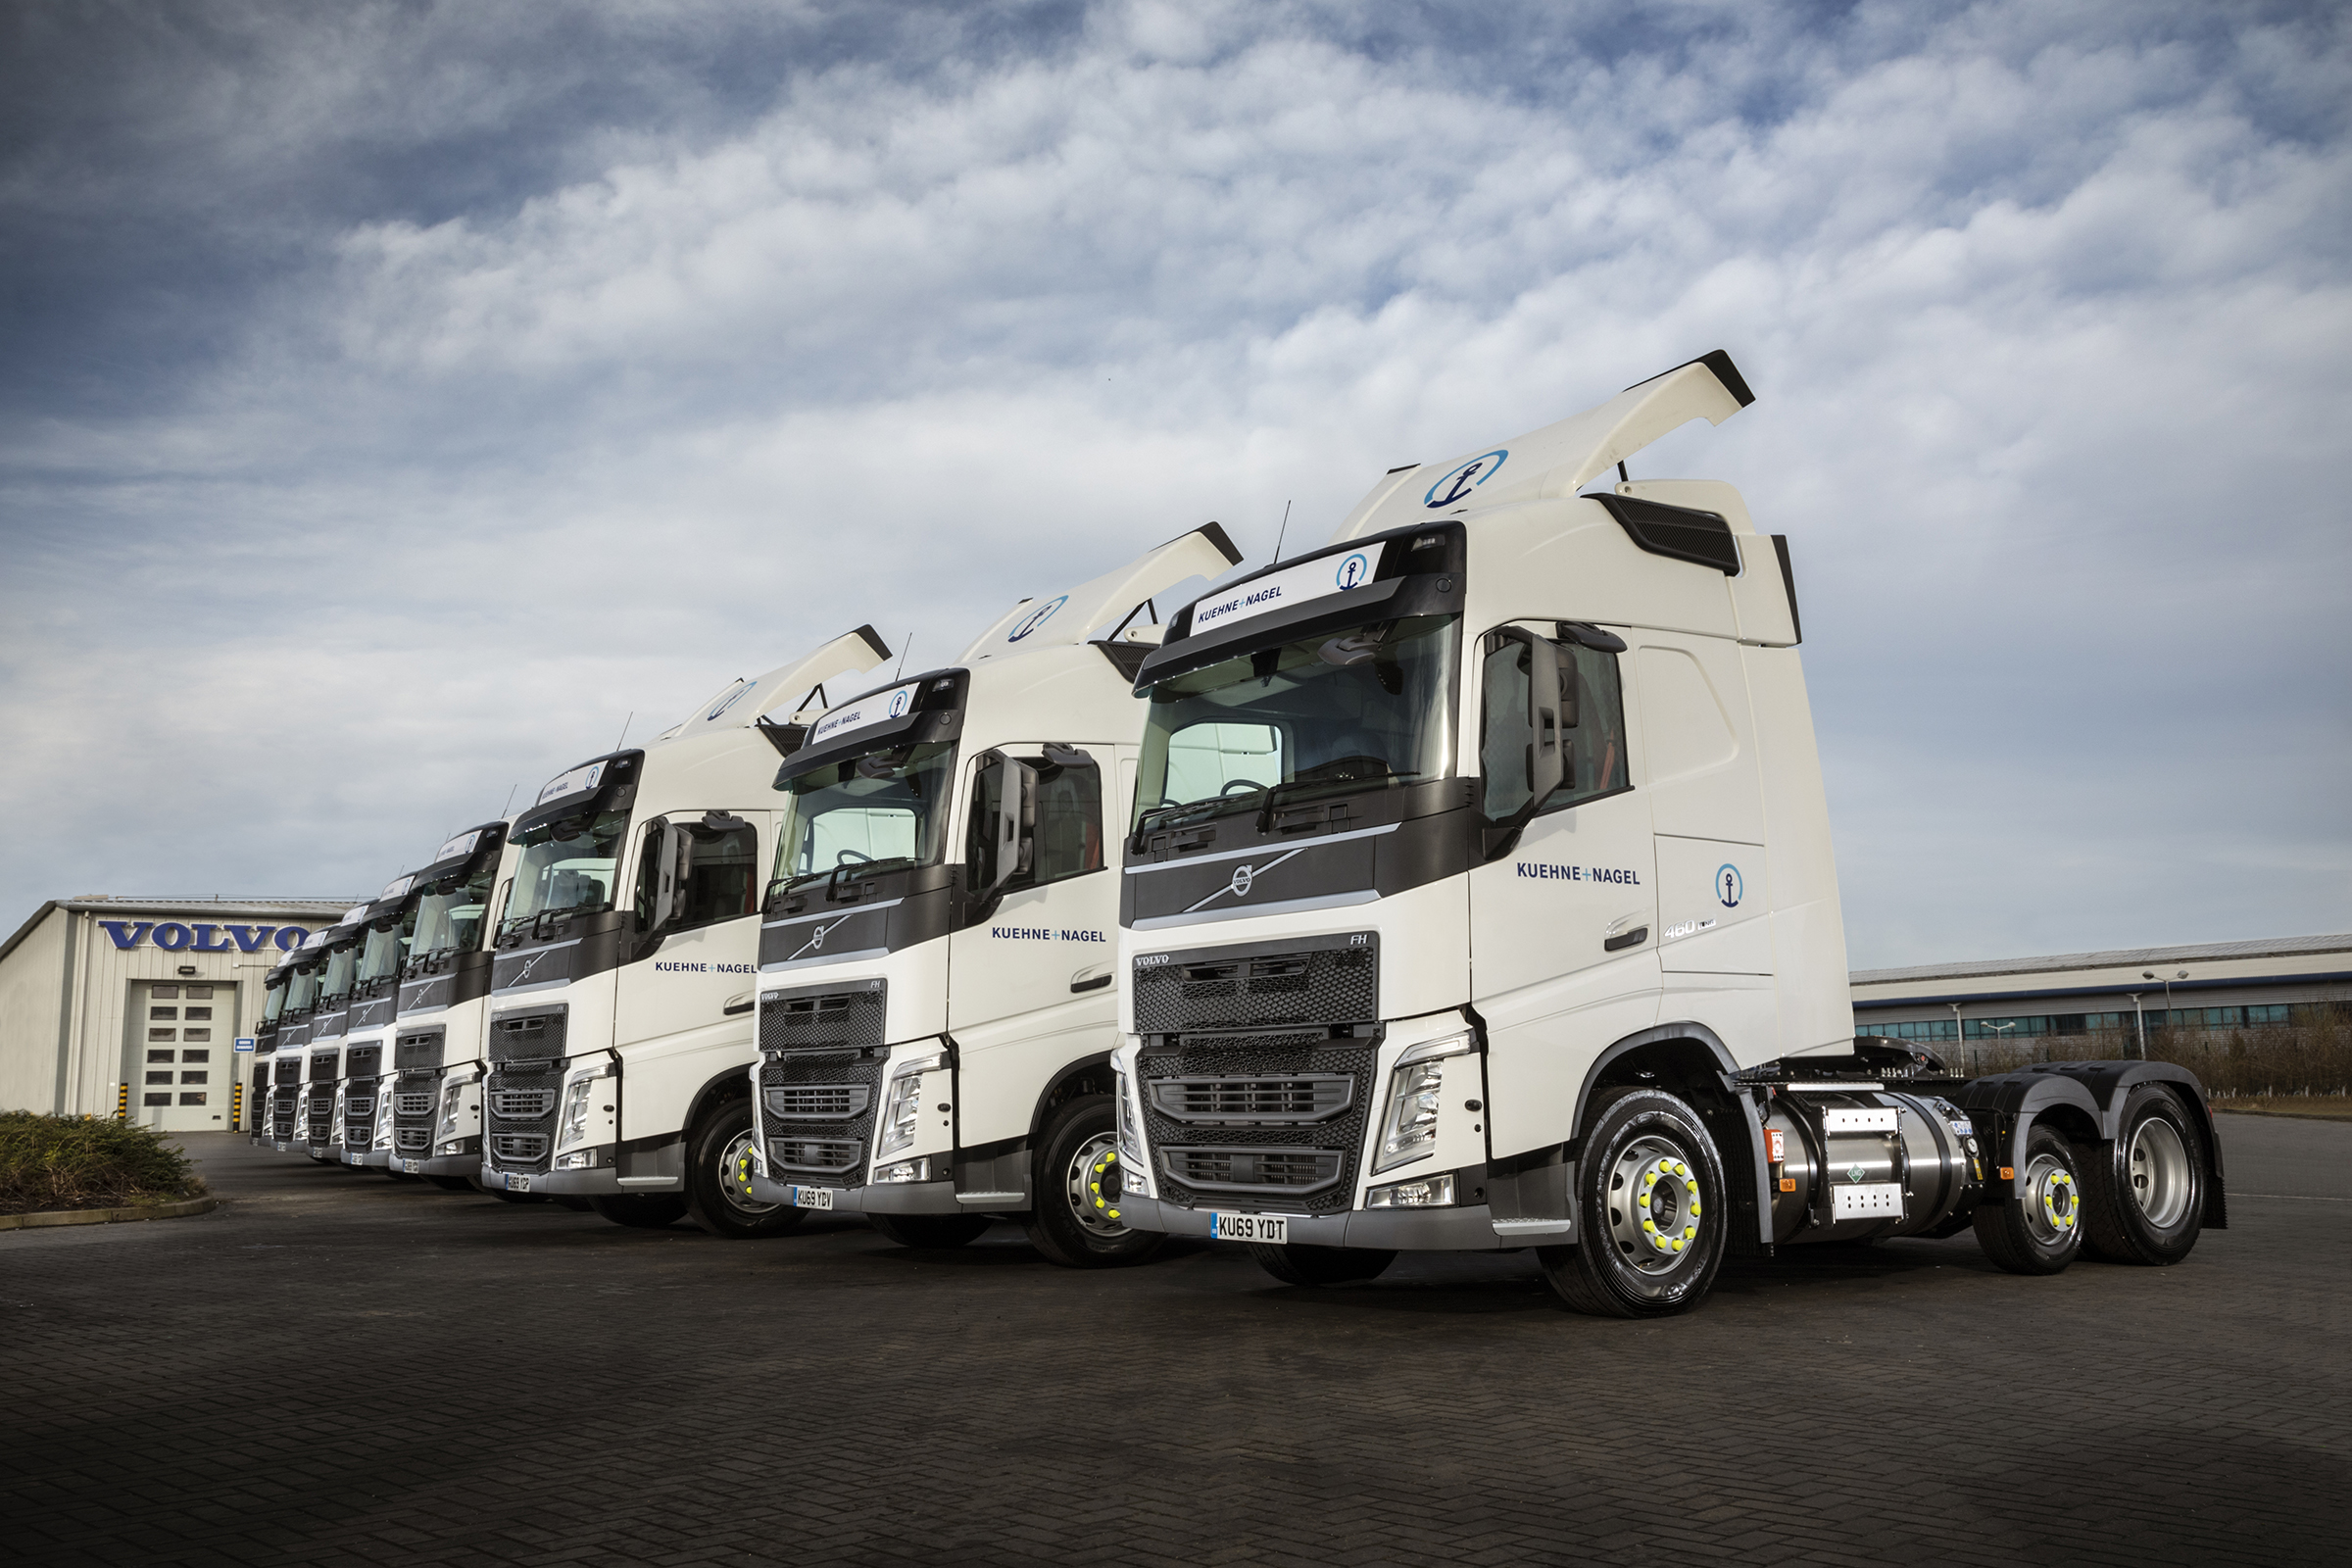 Kuehne + Nagel uses new Volvo gas tractors on Whitbread ...